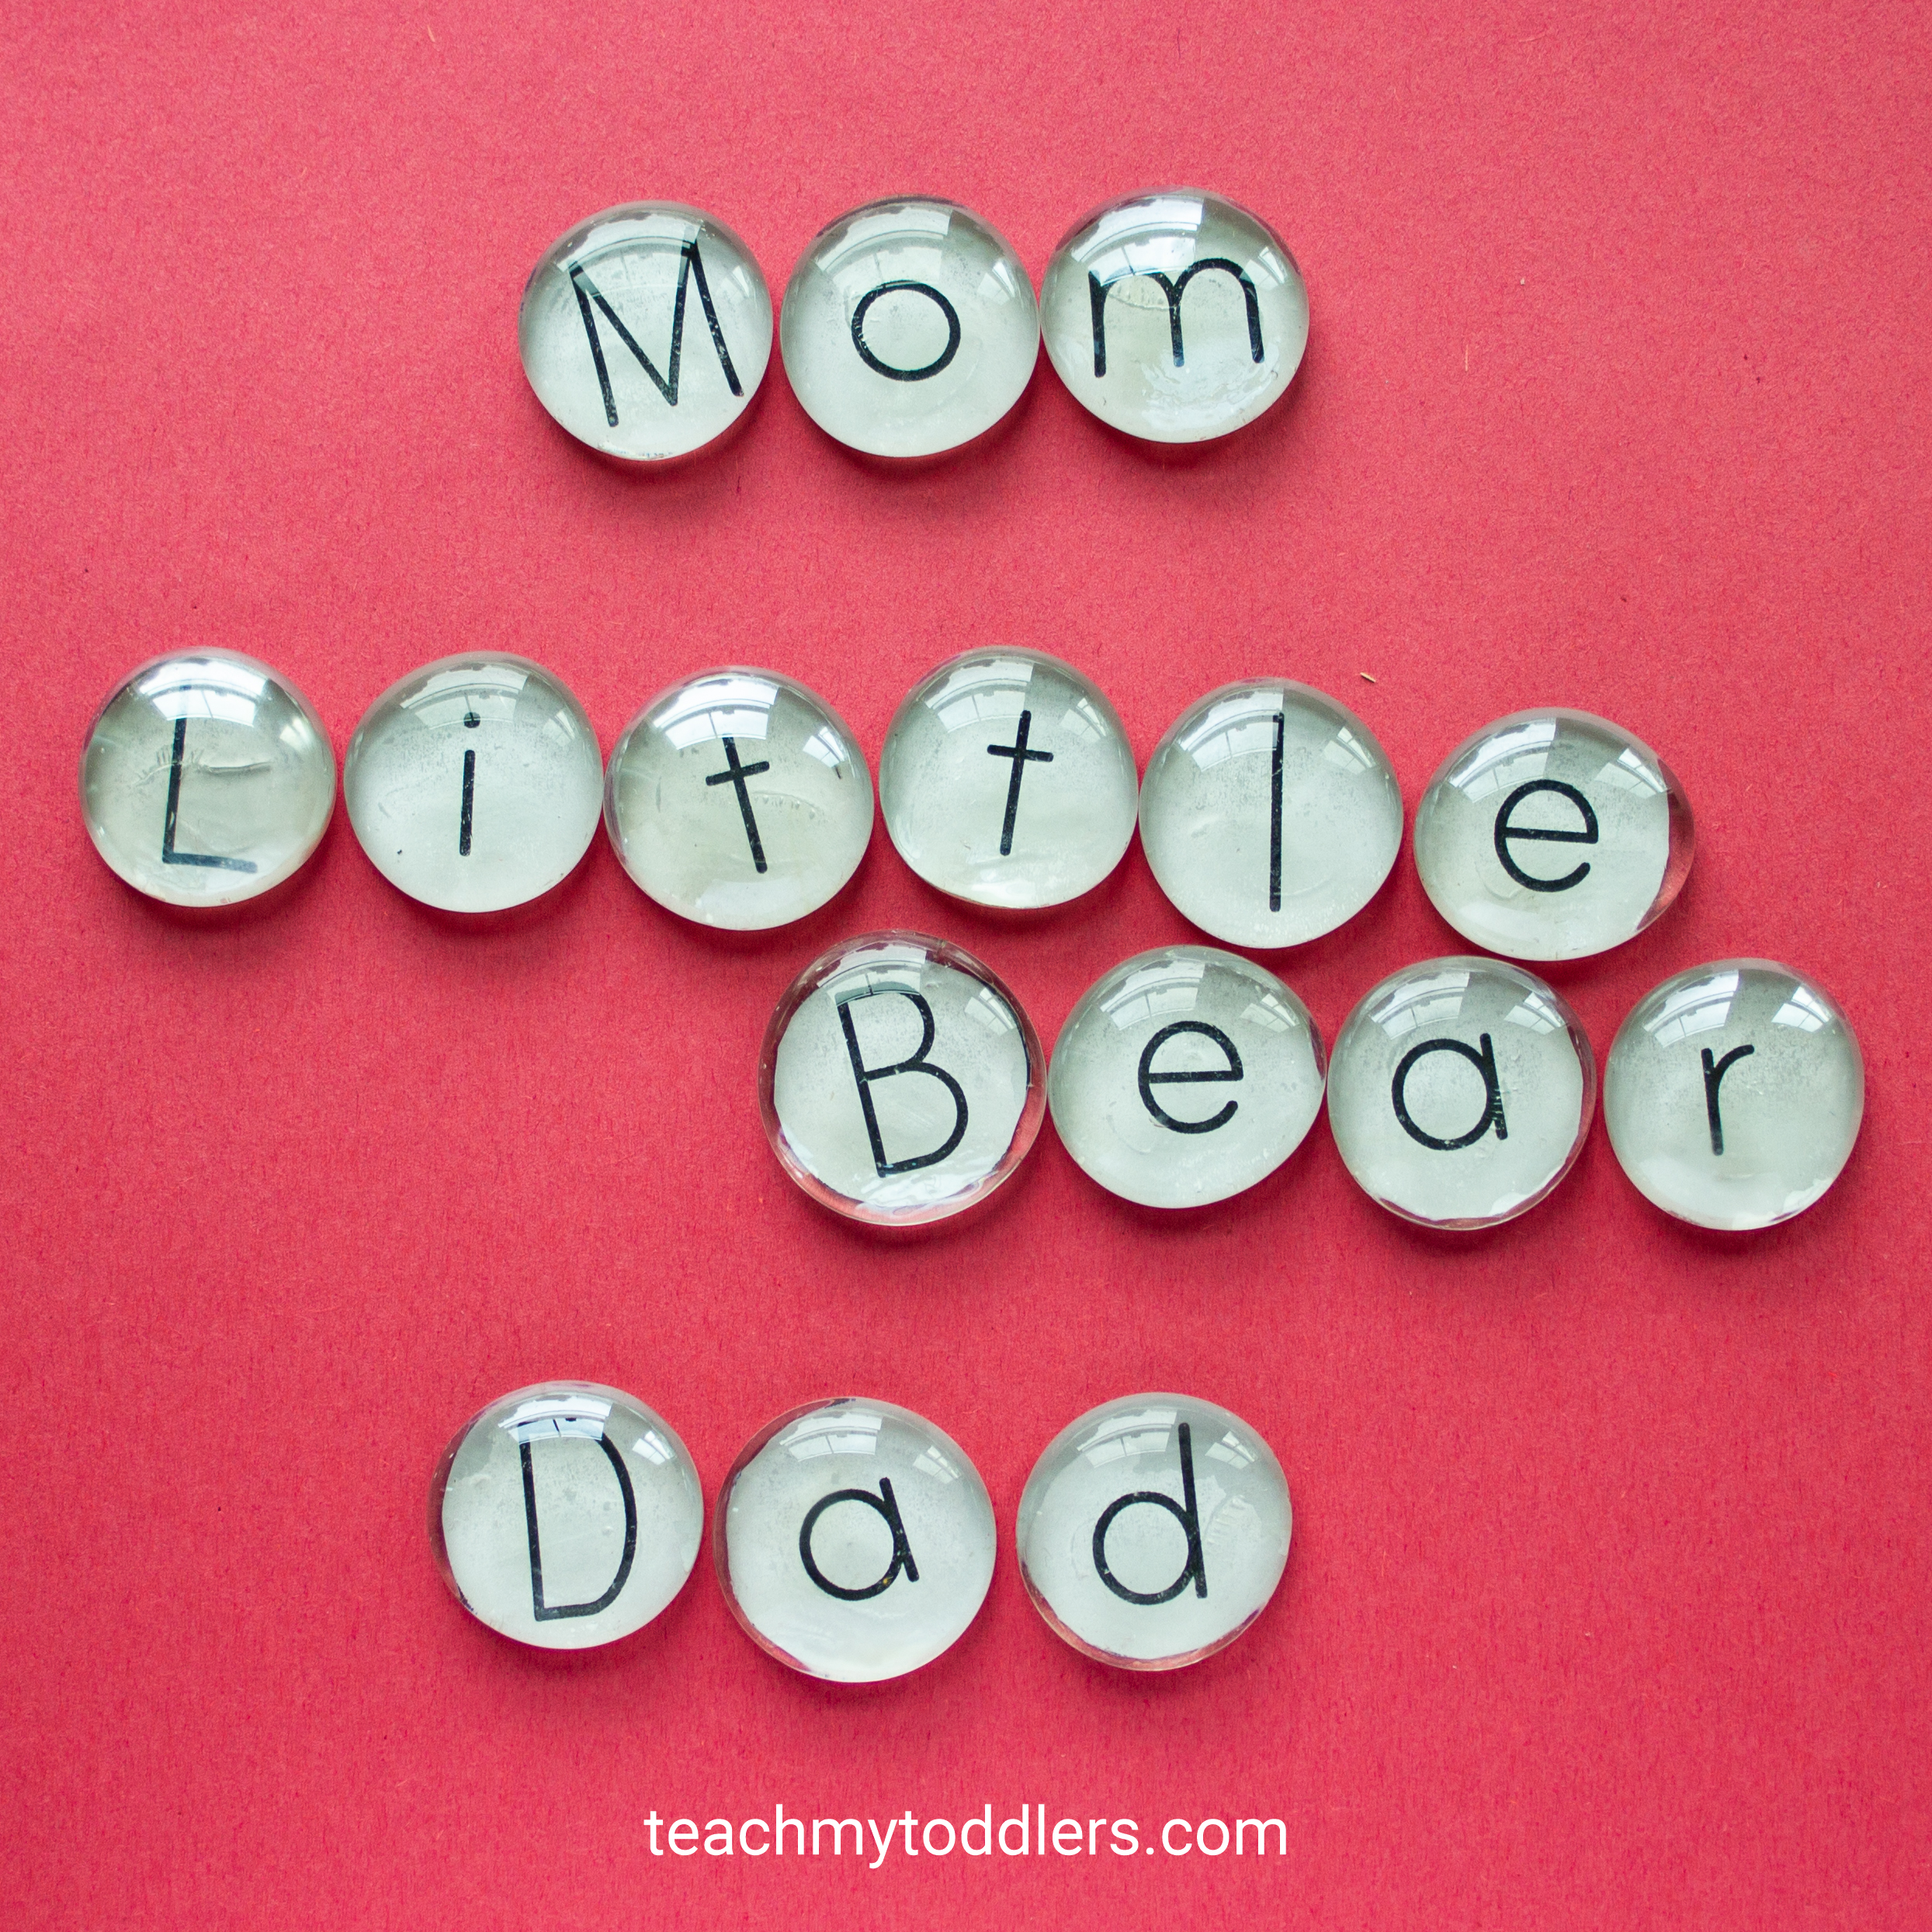 These flat marble letters are a great idea to teach your toddlers the alphabet